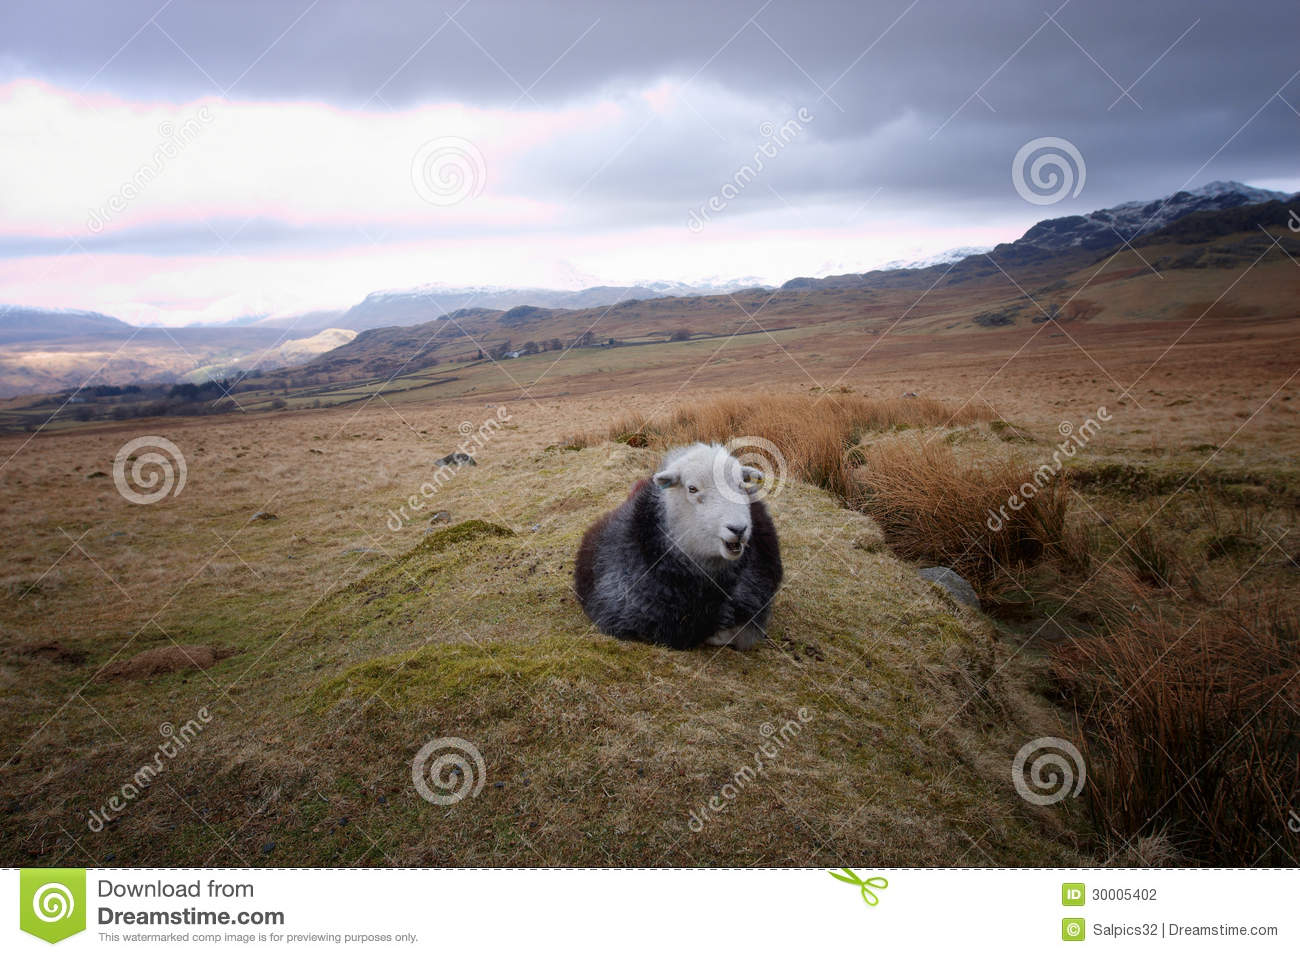 A Black Sheep With A White Face Stock Photo - Image of nobody ... for Sheep Face Black And White  181obs